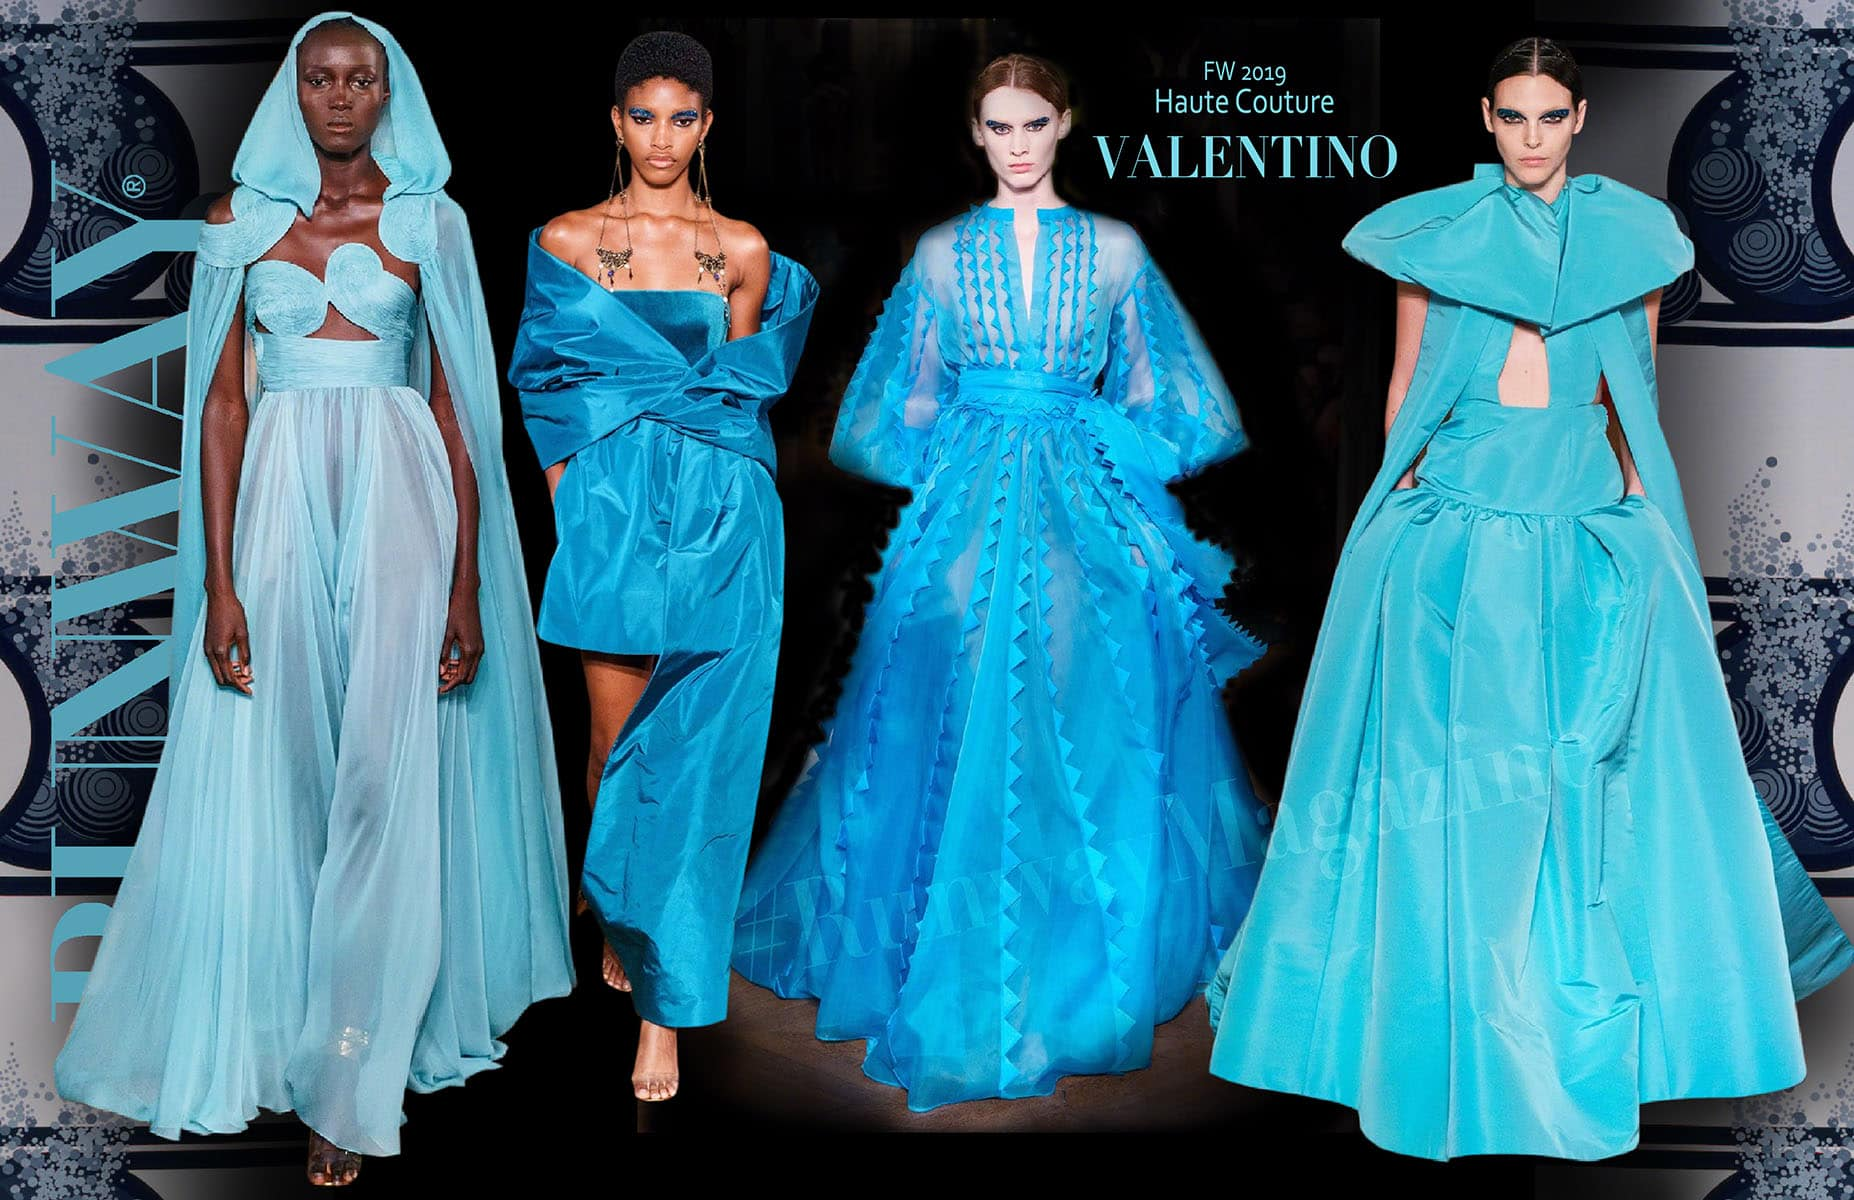 Valentino Haute Couture Fall-Winter 2019-2020 Paris Fashion Week by RUNWAY MAGAZINE